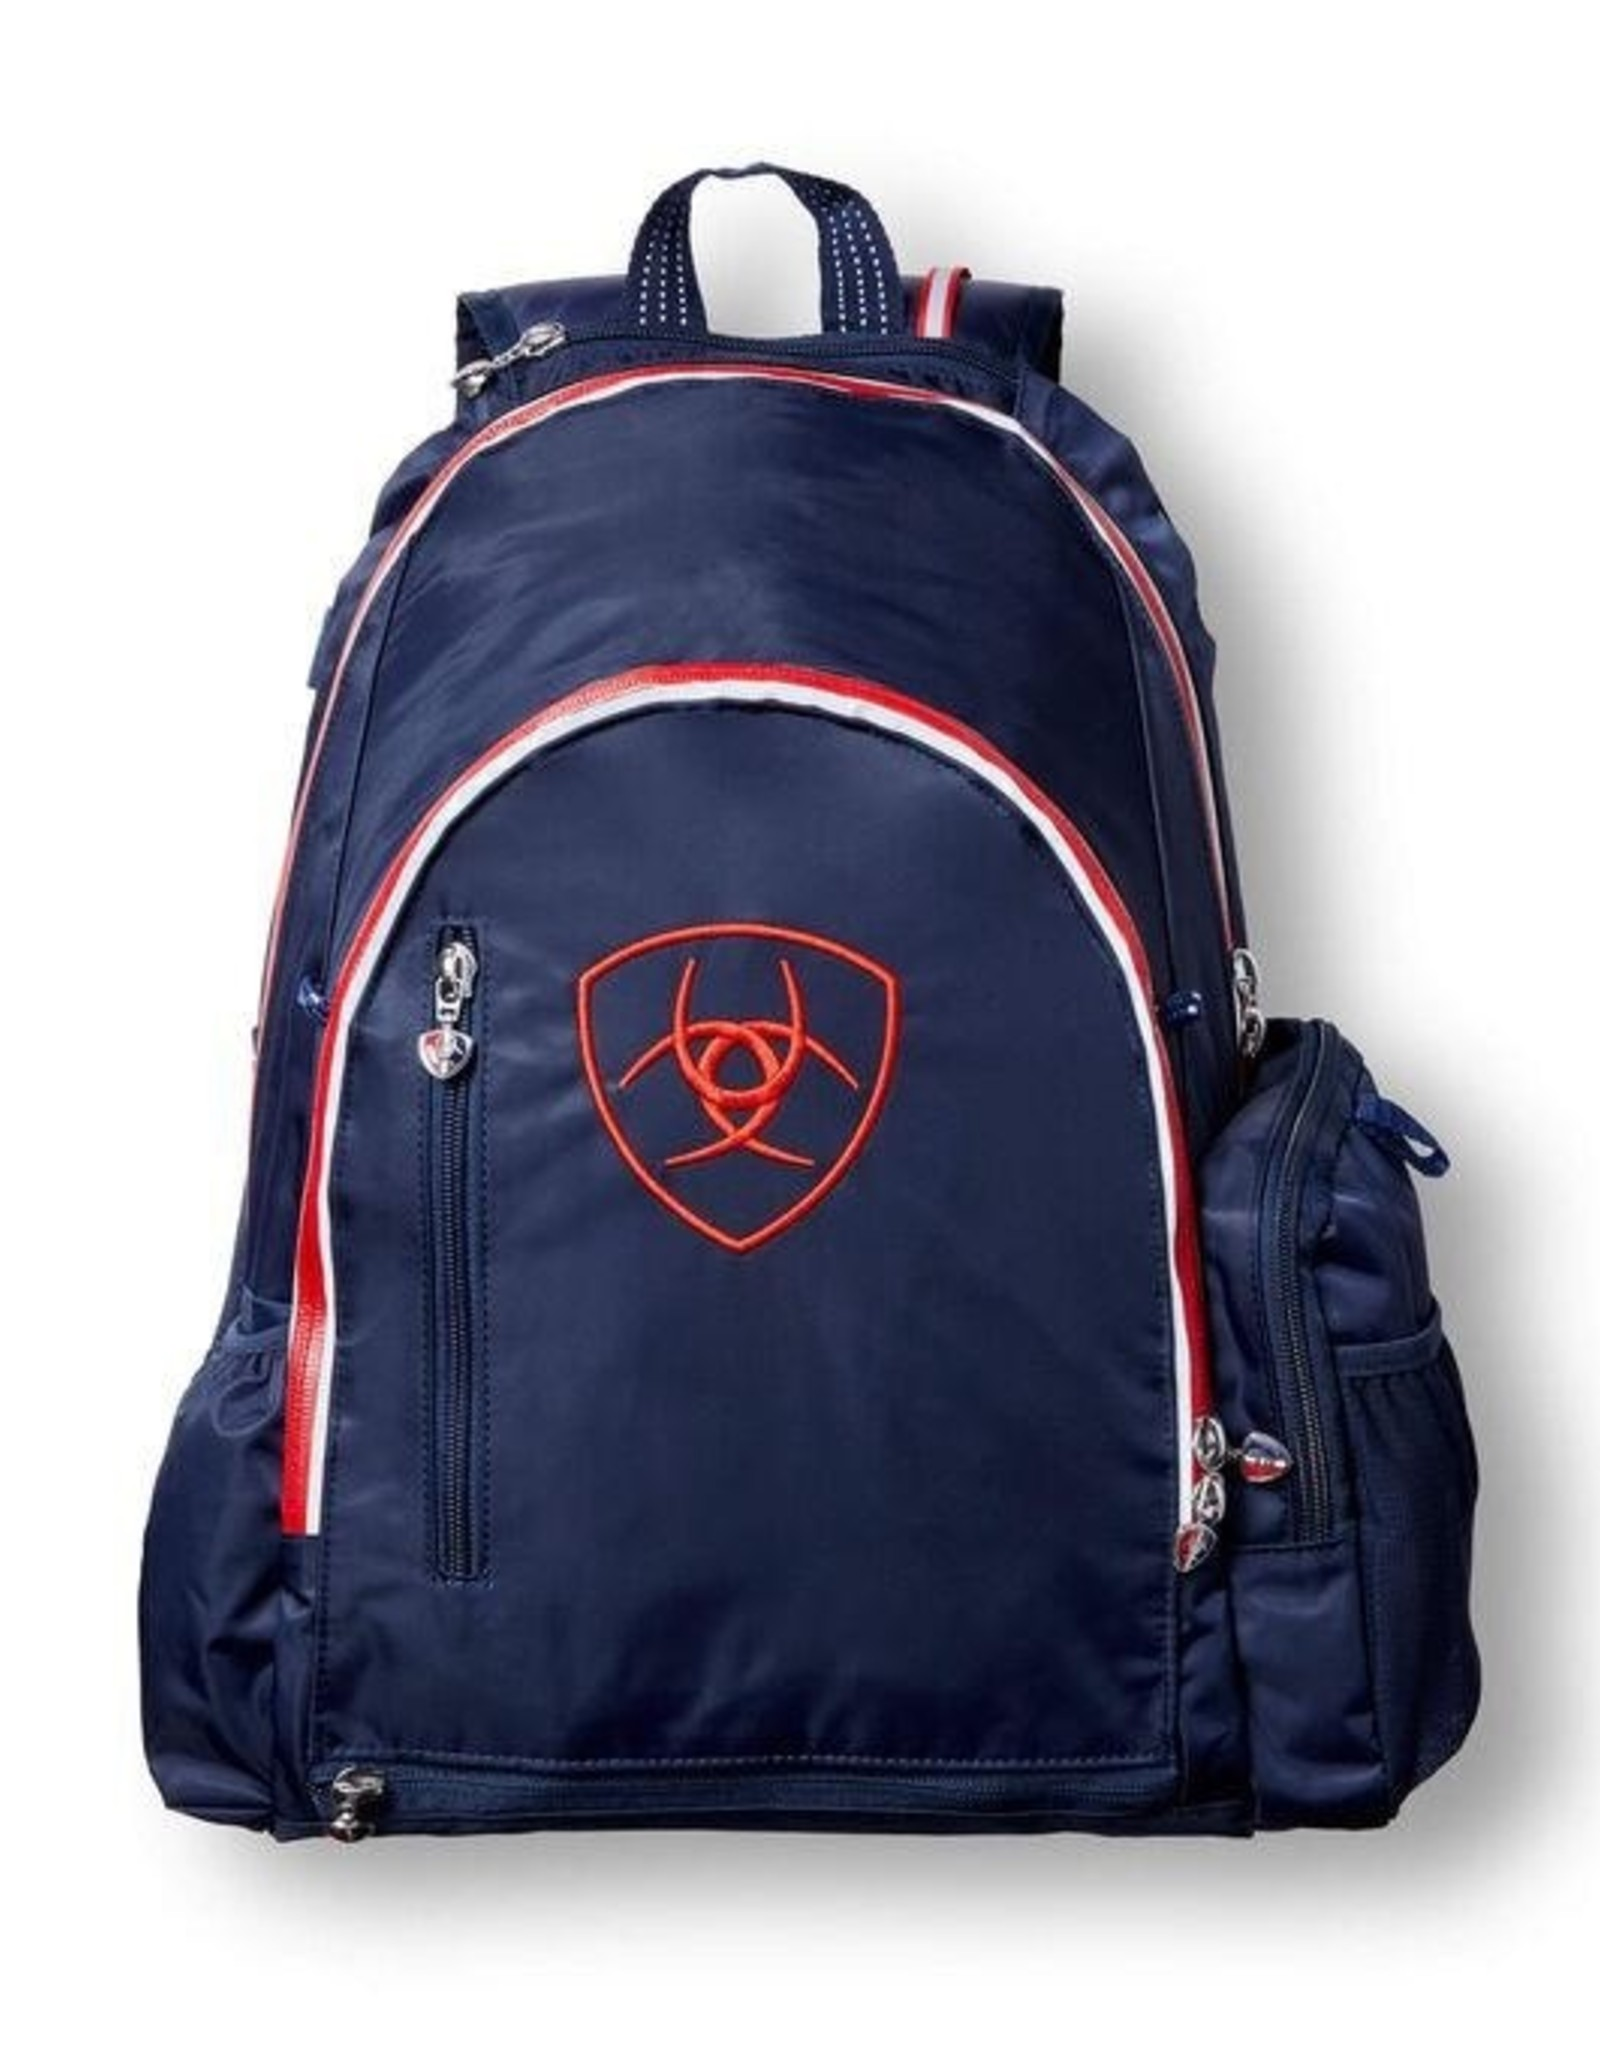 Ariat Ring Side Backpack